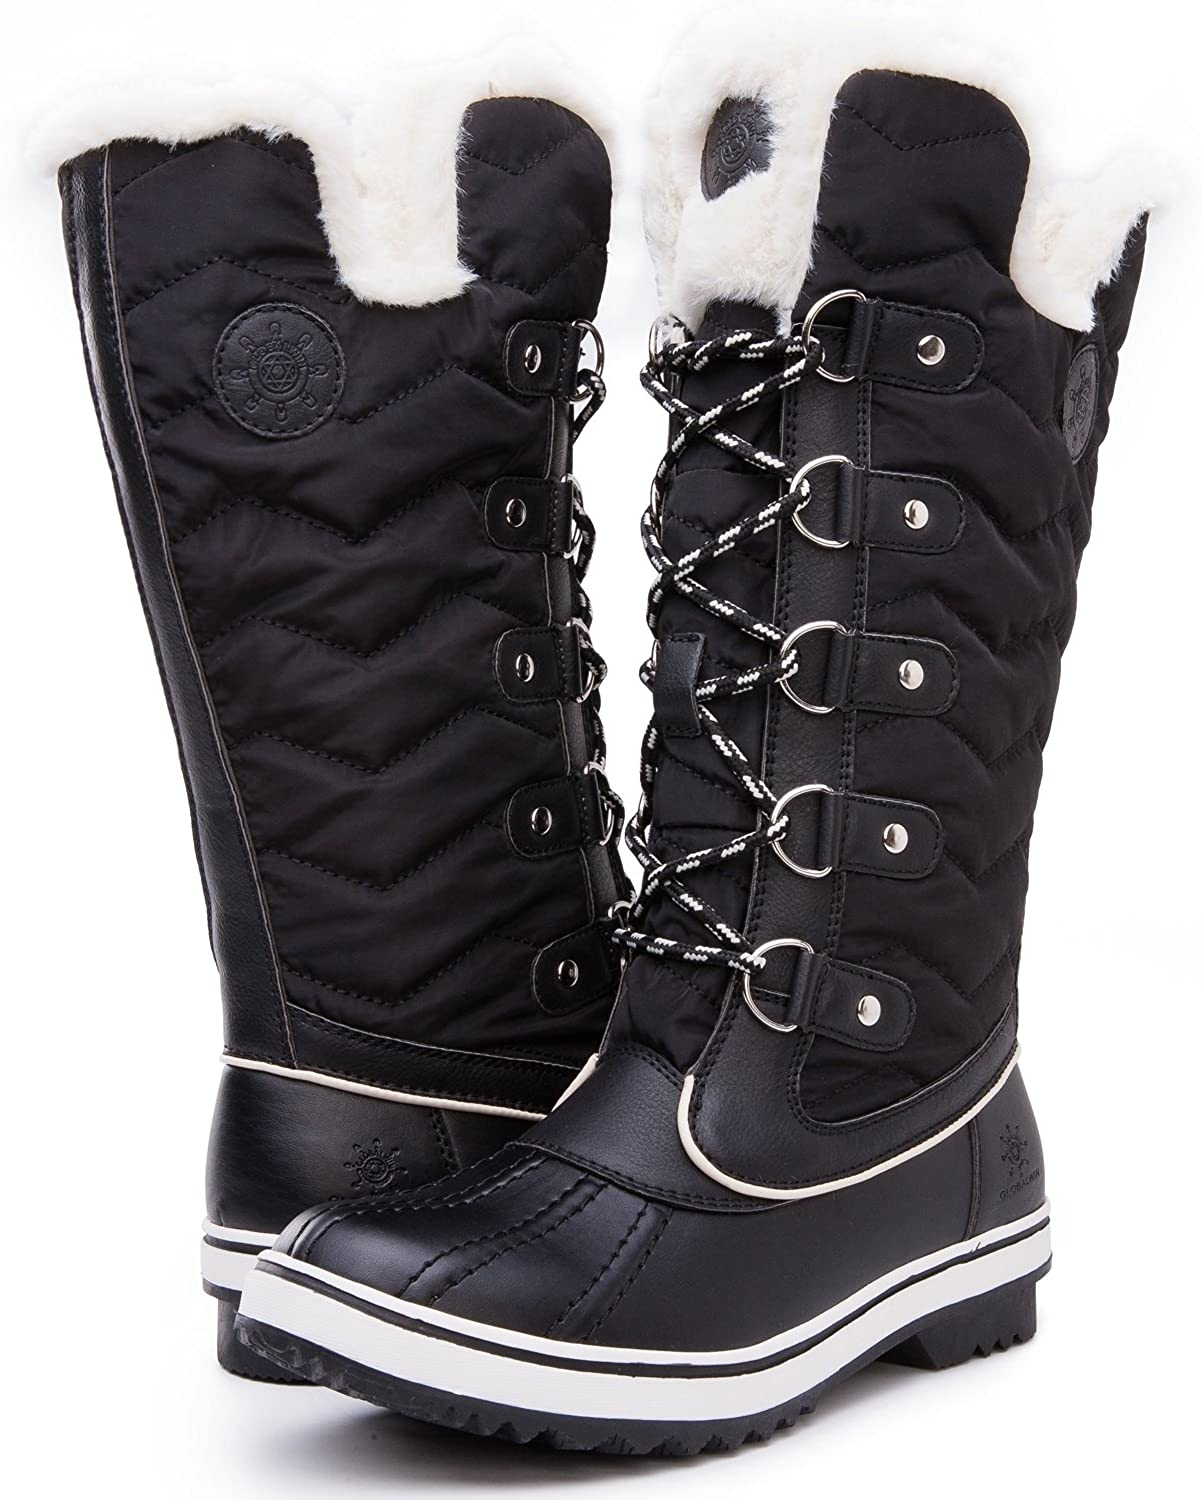 kingshow Women's Globalwin Product 1711 Mid Snow Boots San Jose Mall Winter Claf